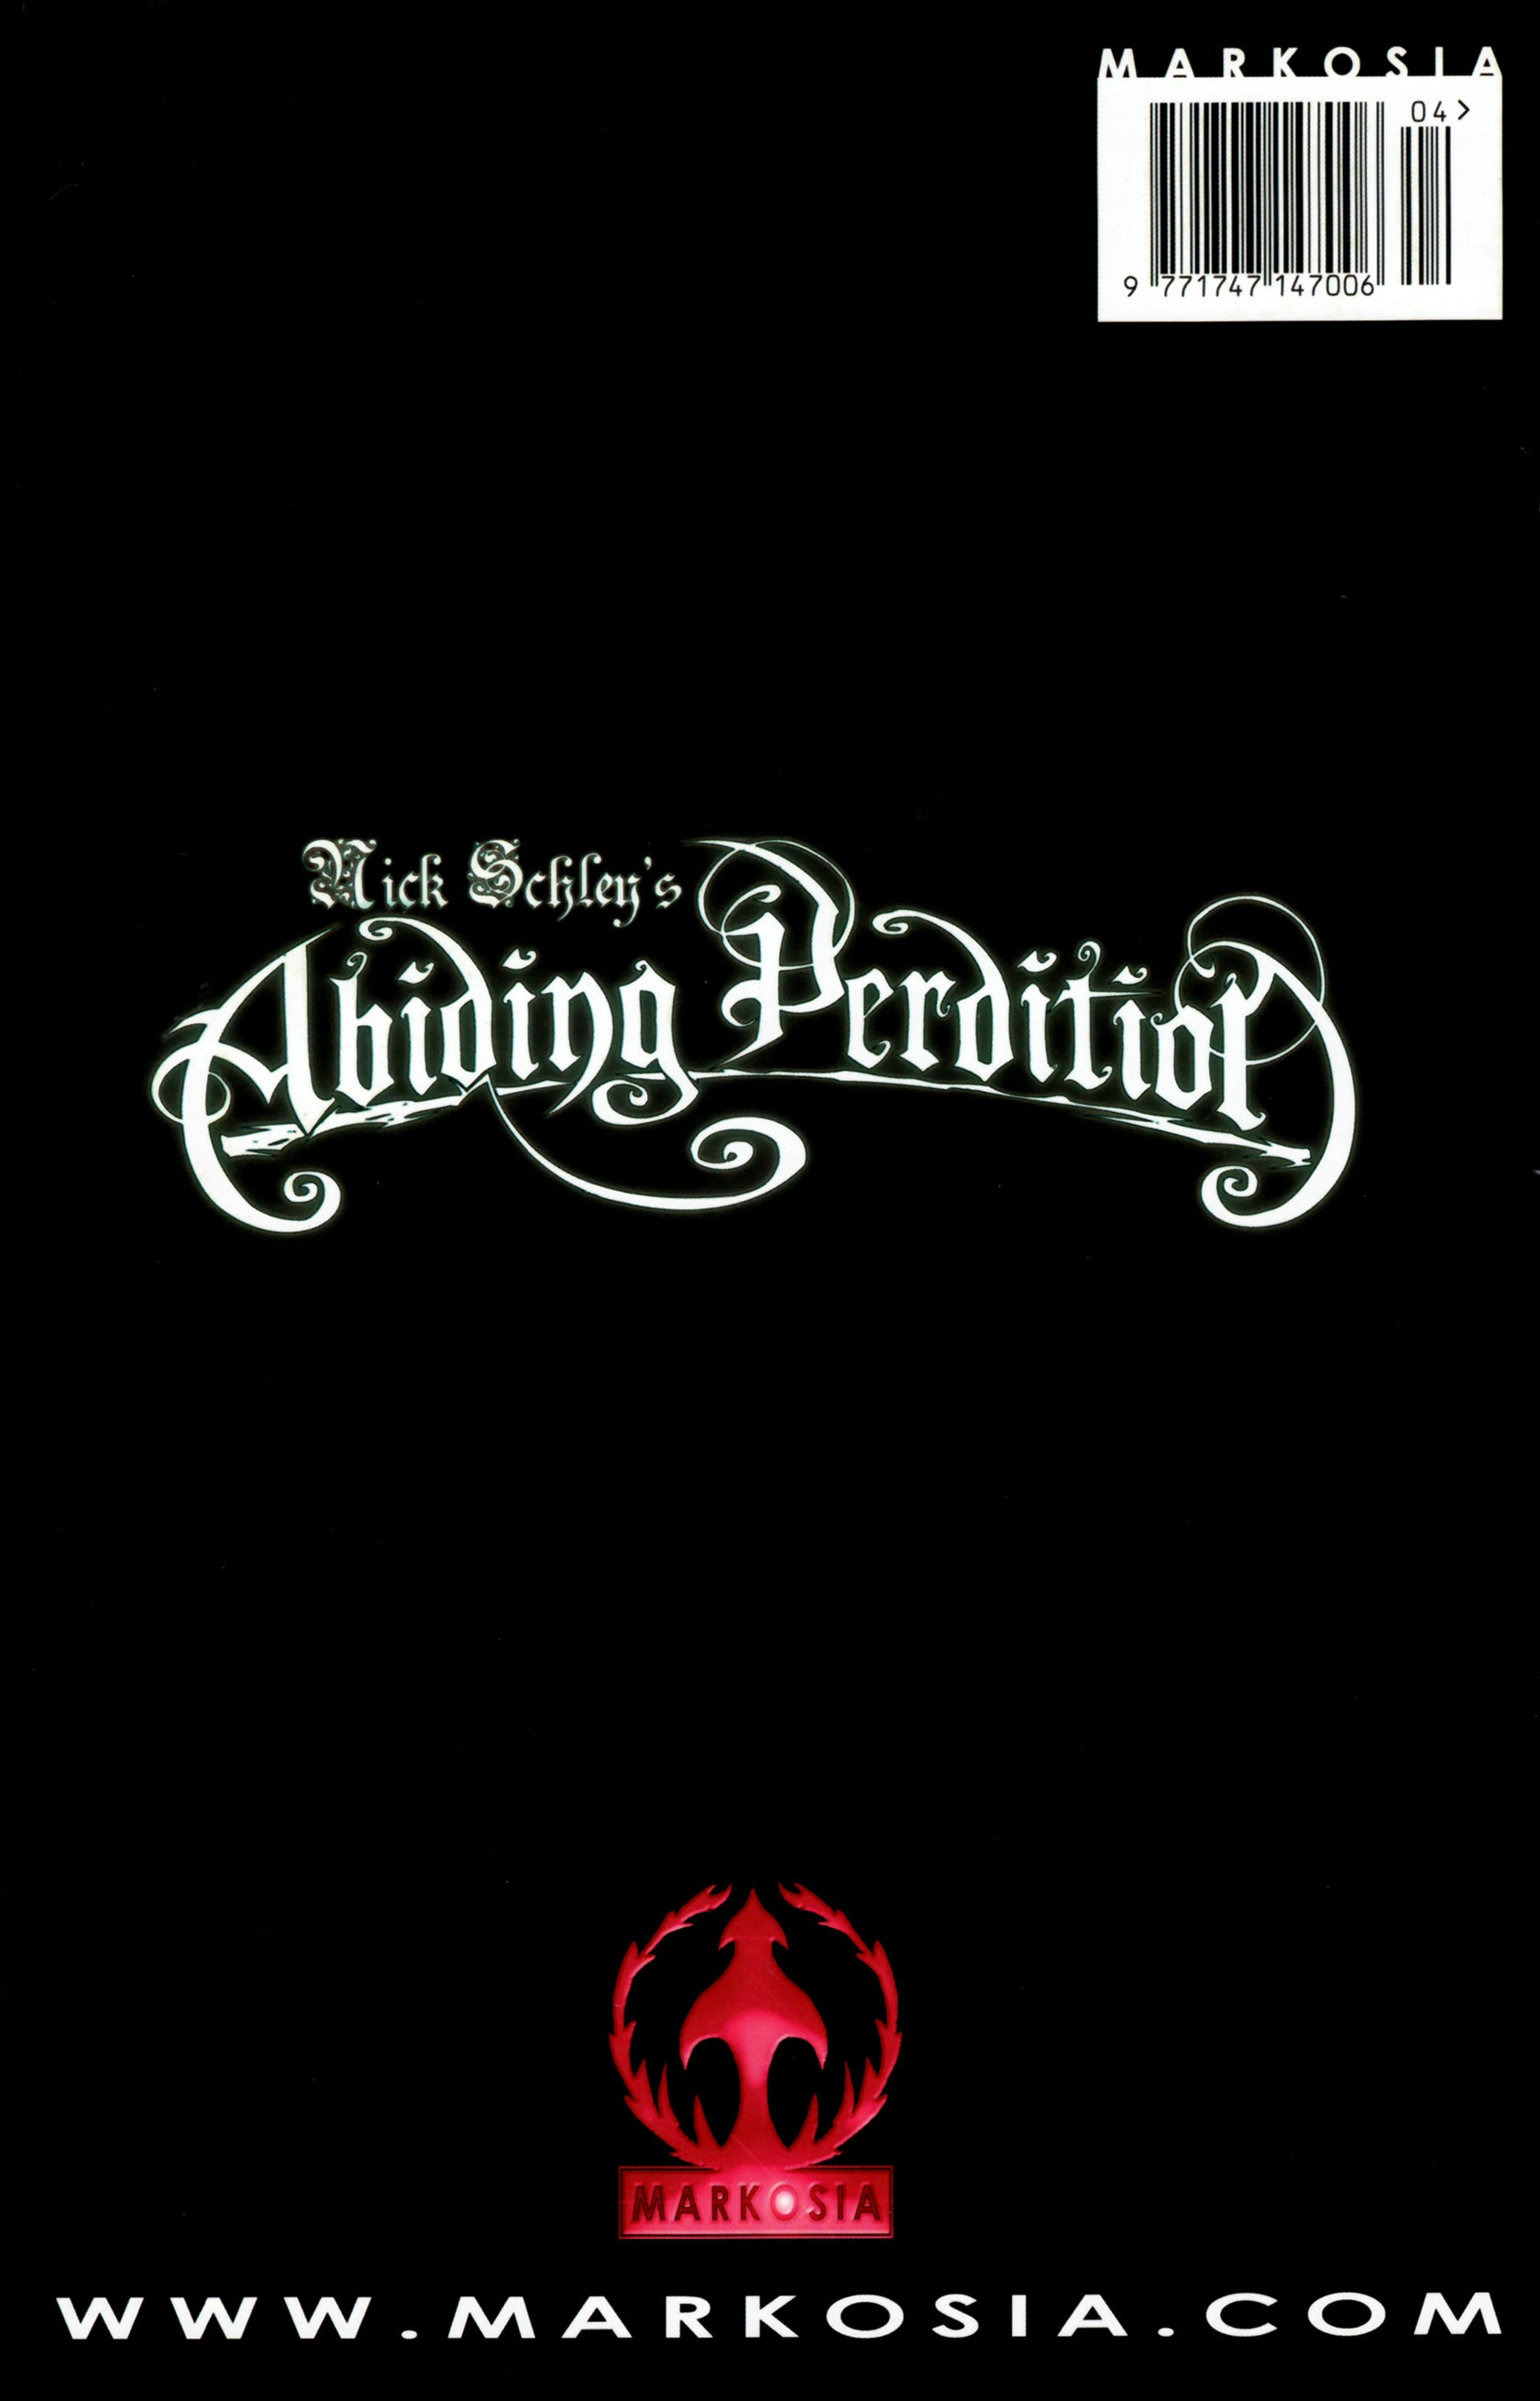 Read online Abiding Perdition comic -  Issue #4 - 36